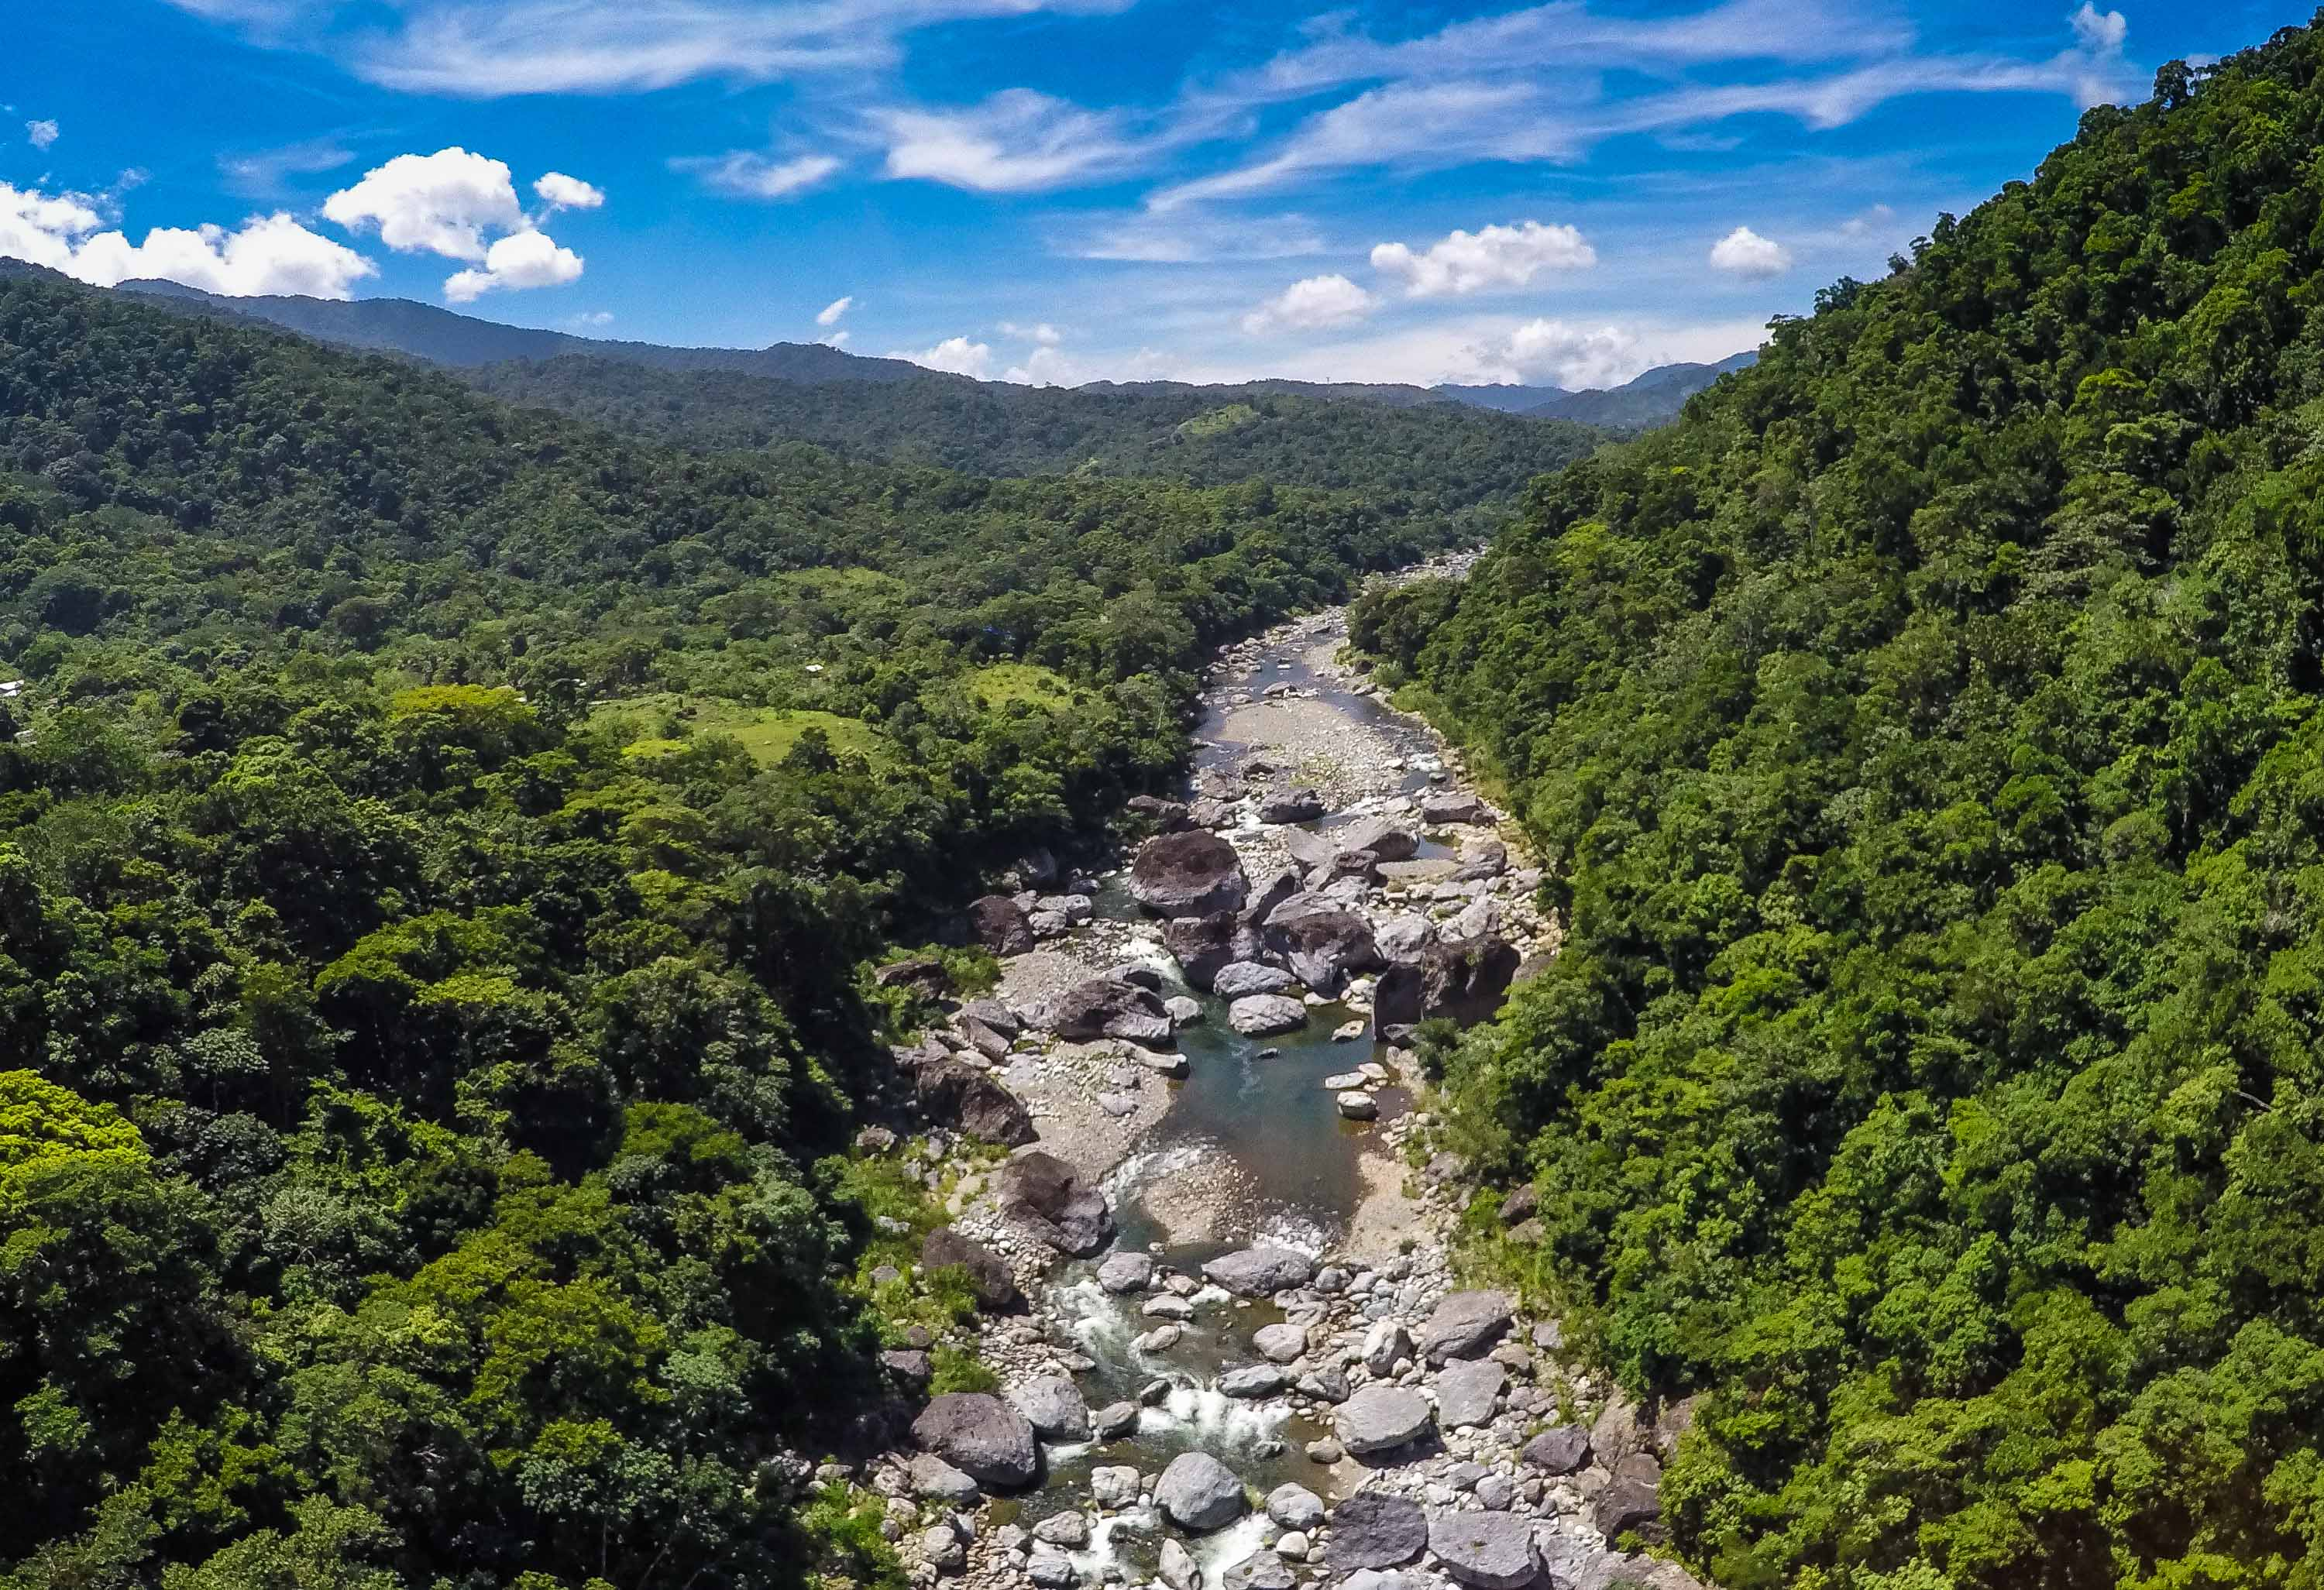 Cangrejal River: how do I get there?